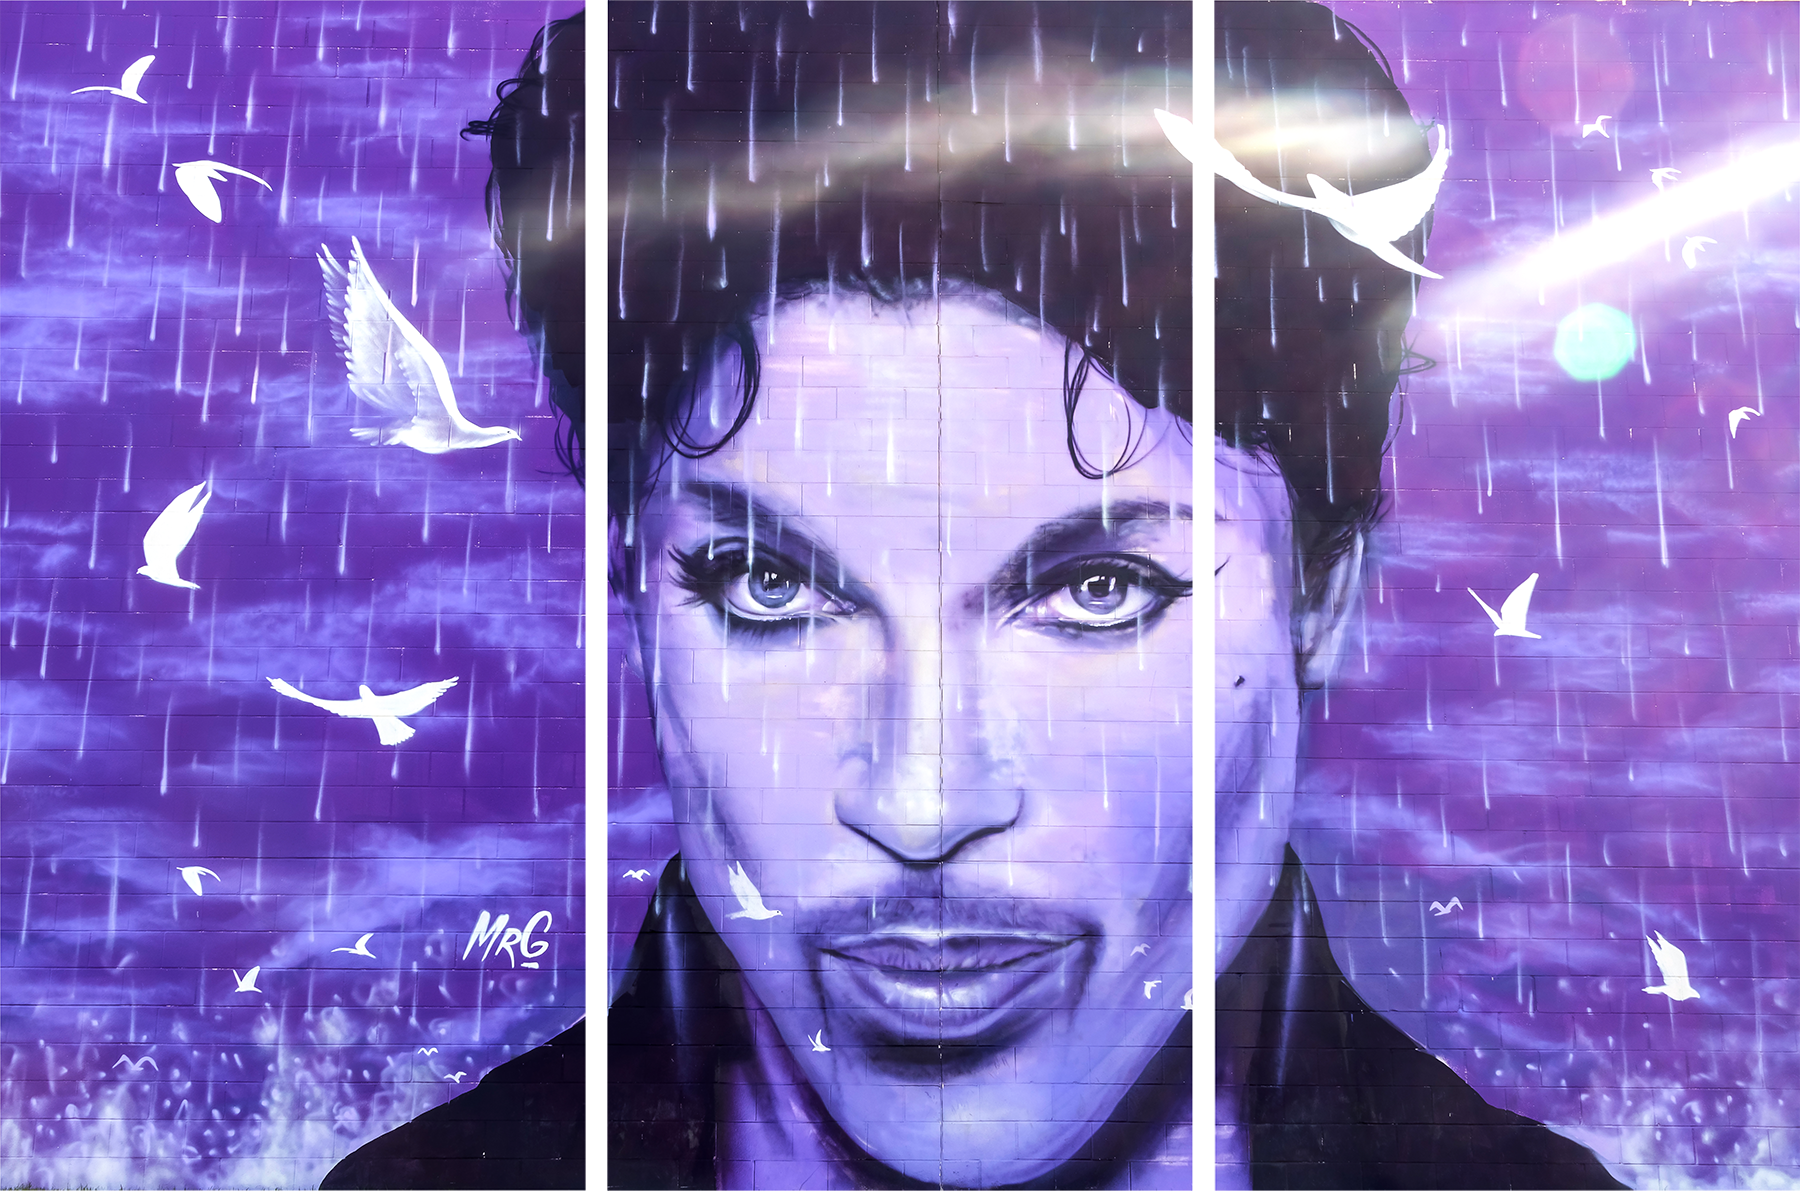 Prince mural at the chanhassen cinema mwfjgf